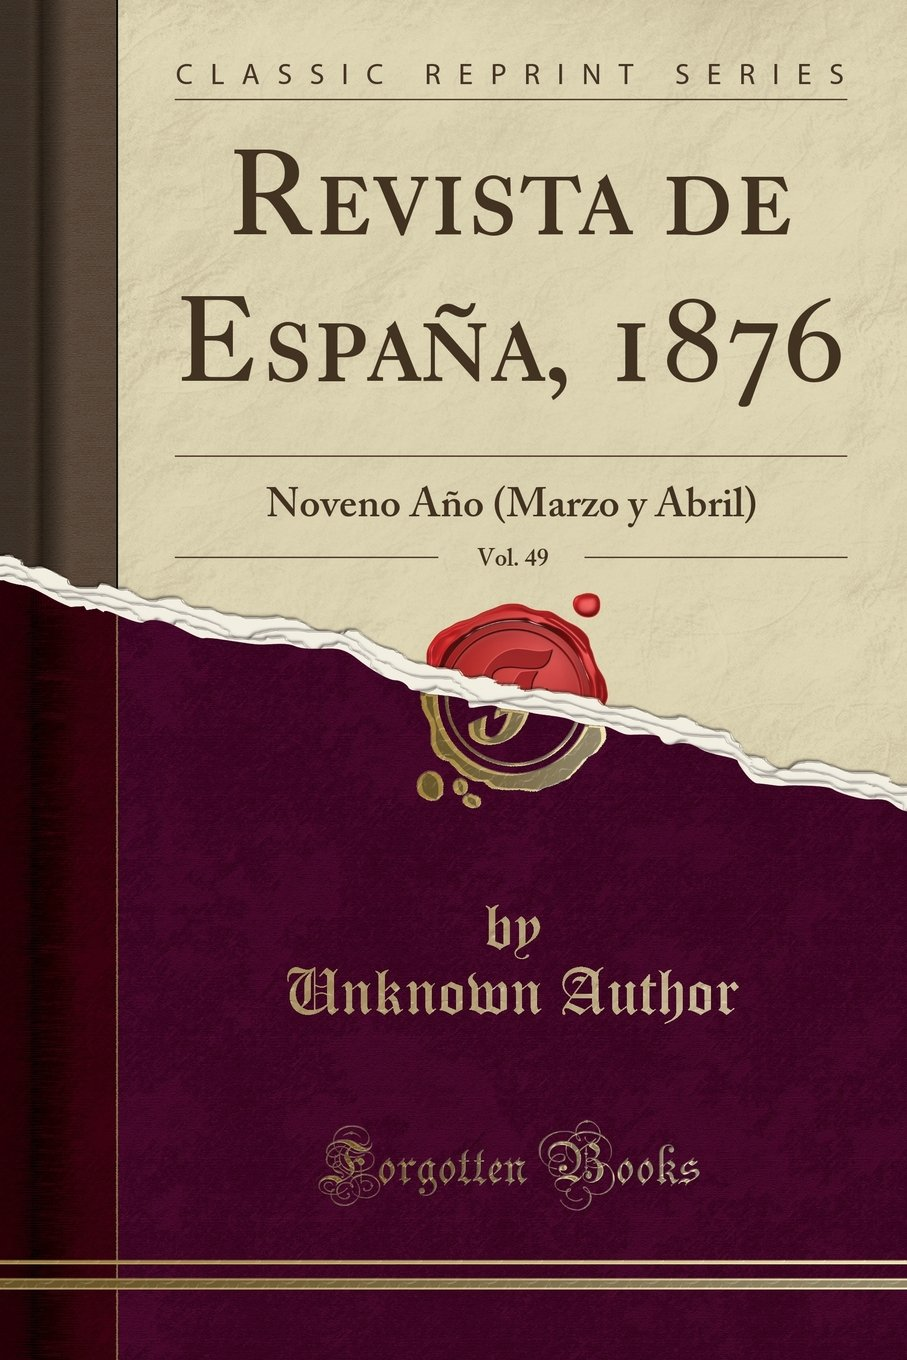 Revista de España, 1876, Vol. 49: Noveno Año (Marzo y Abril) (Classic Reprint) (Spanish Edition): Unknown Author: 9781334912986: Amazon.com: Books